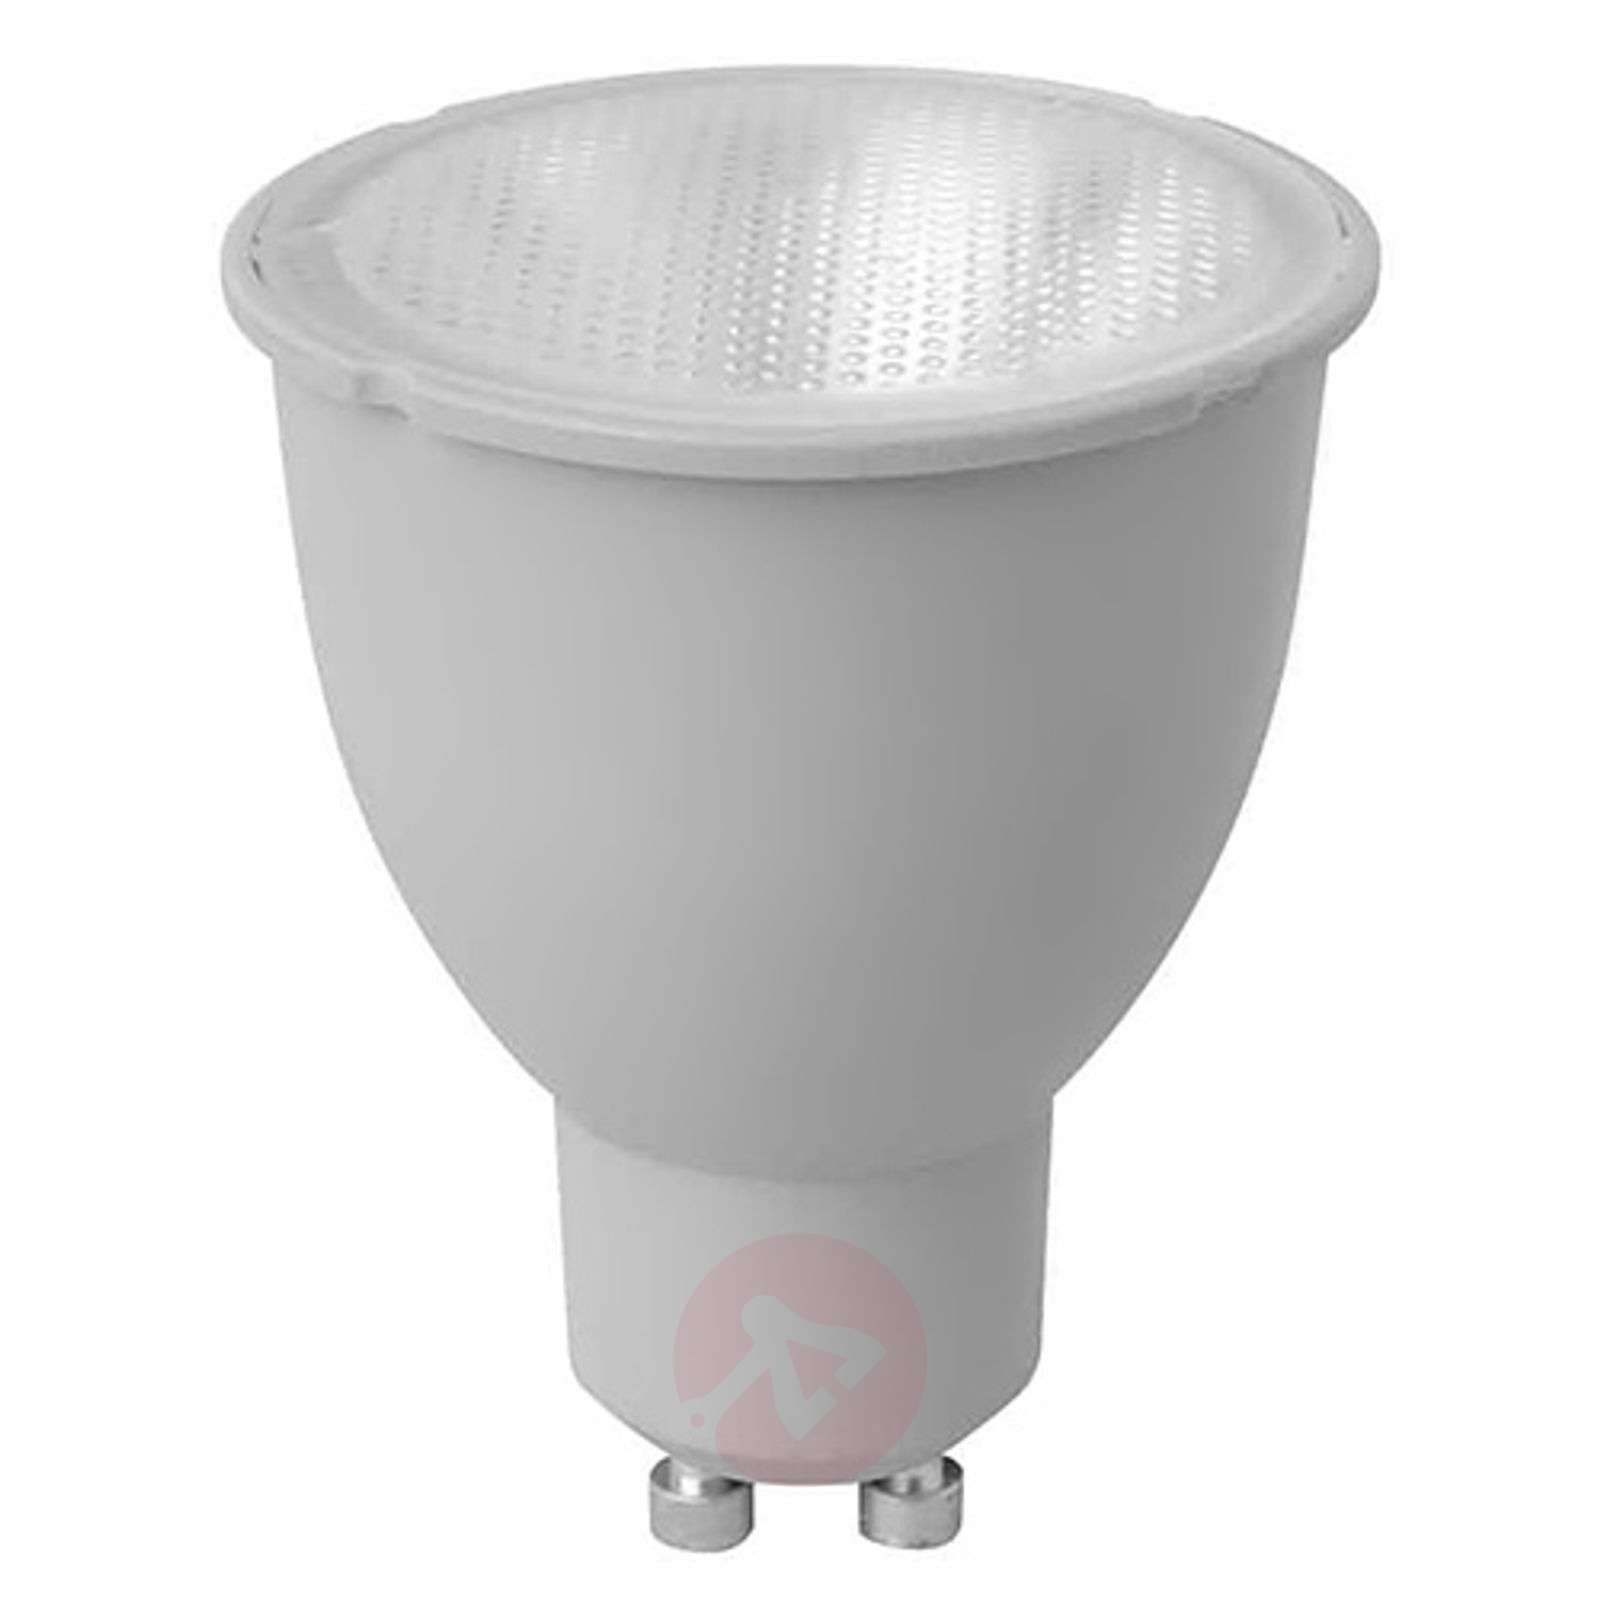 GU10 8W 828 LED reflector MEGAMAN Smart Lighting-6530167-01